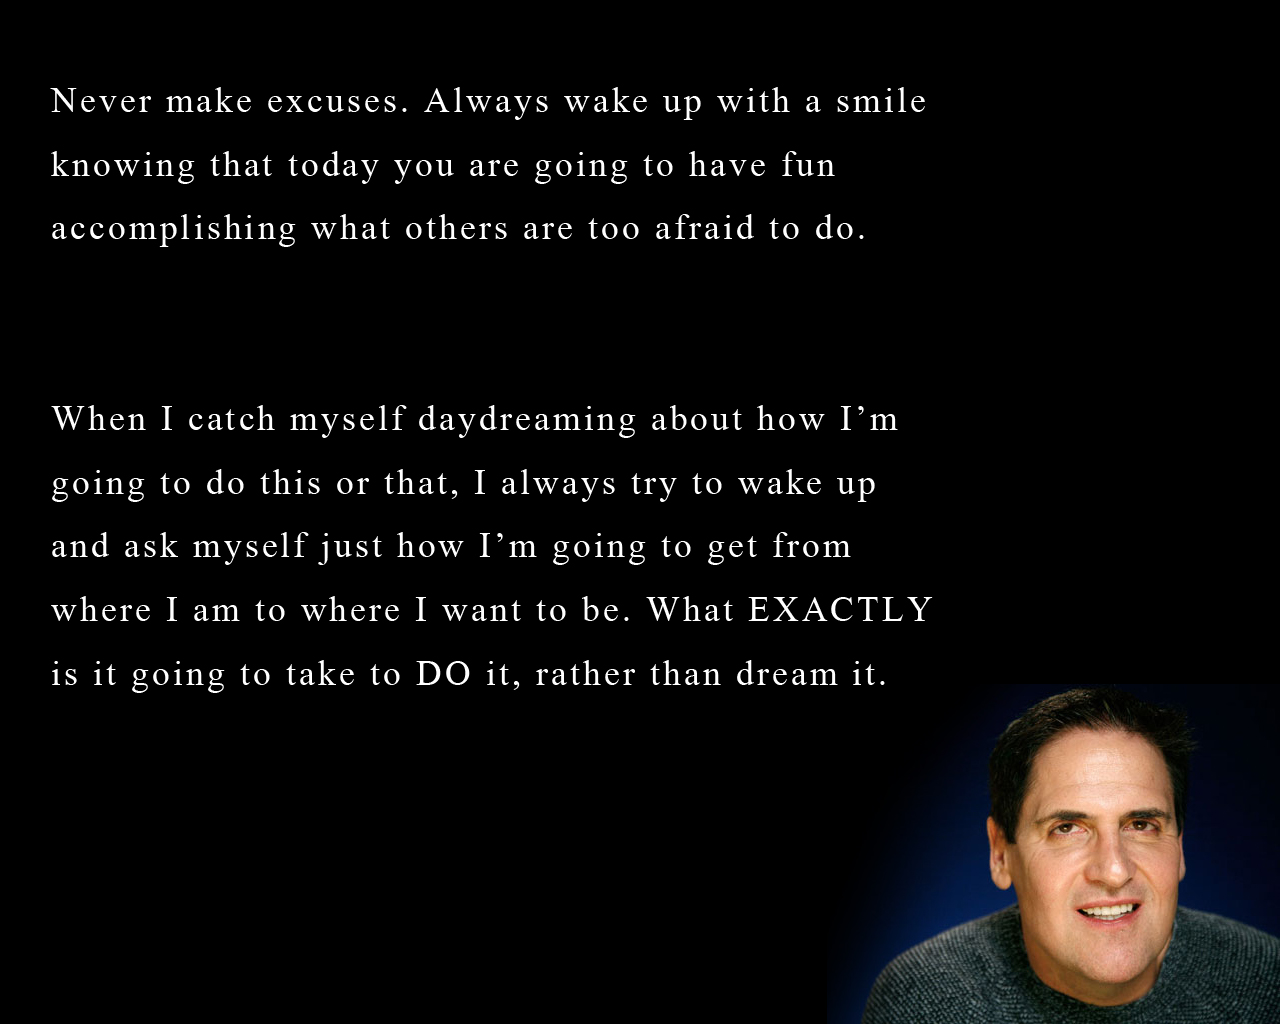 Mark Cuban's quote #6